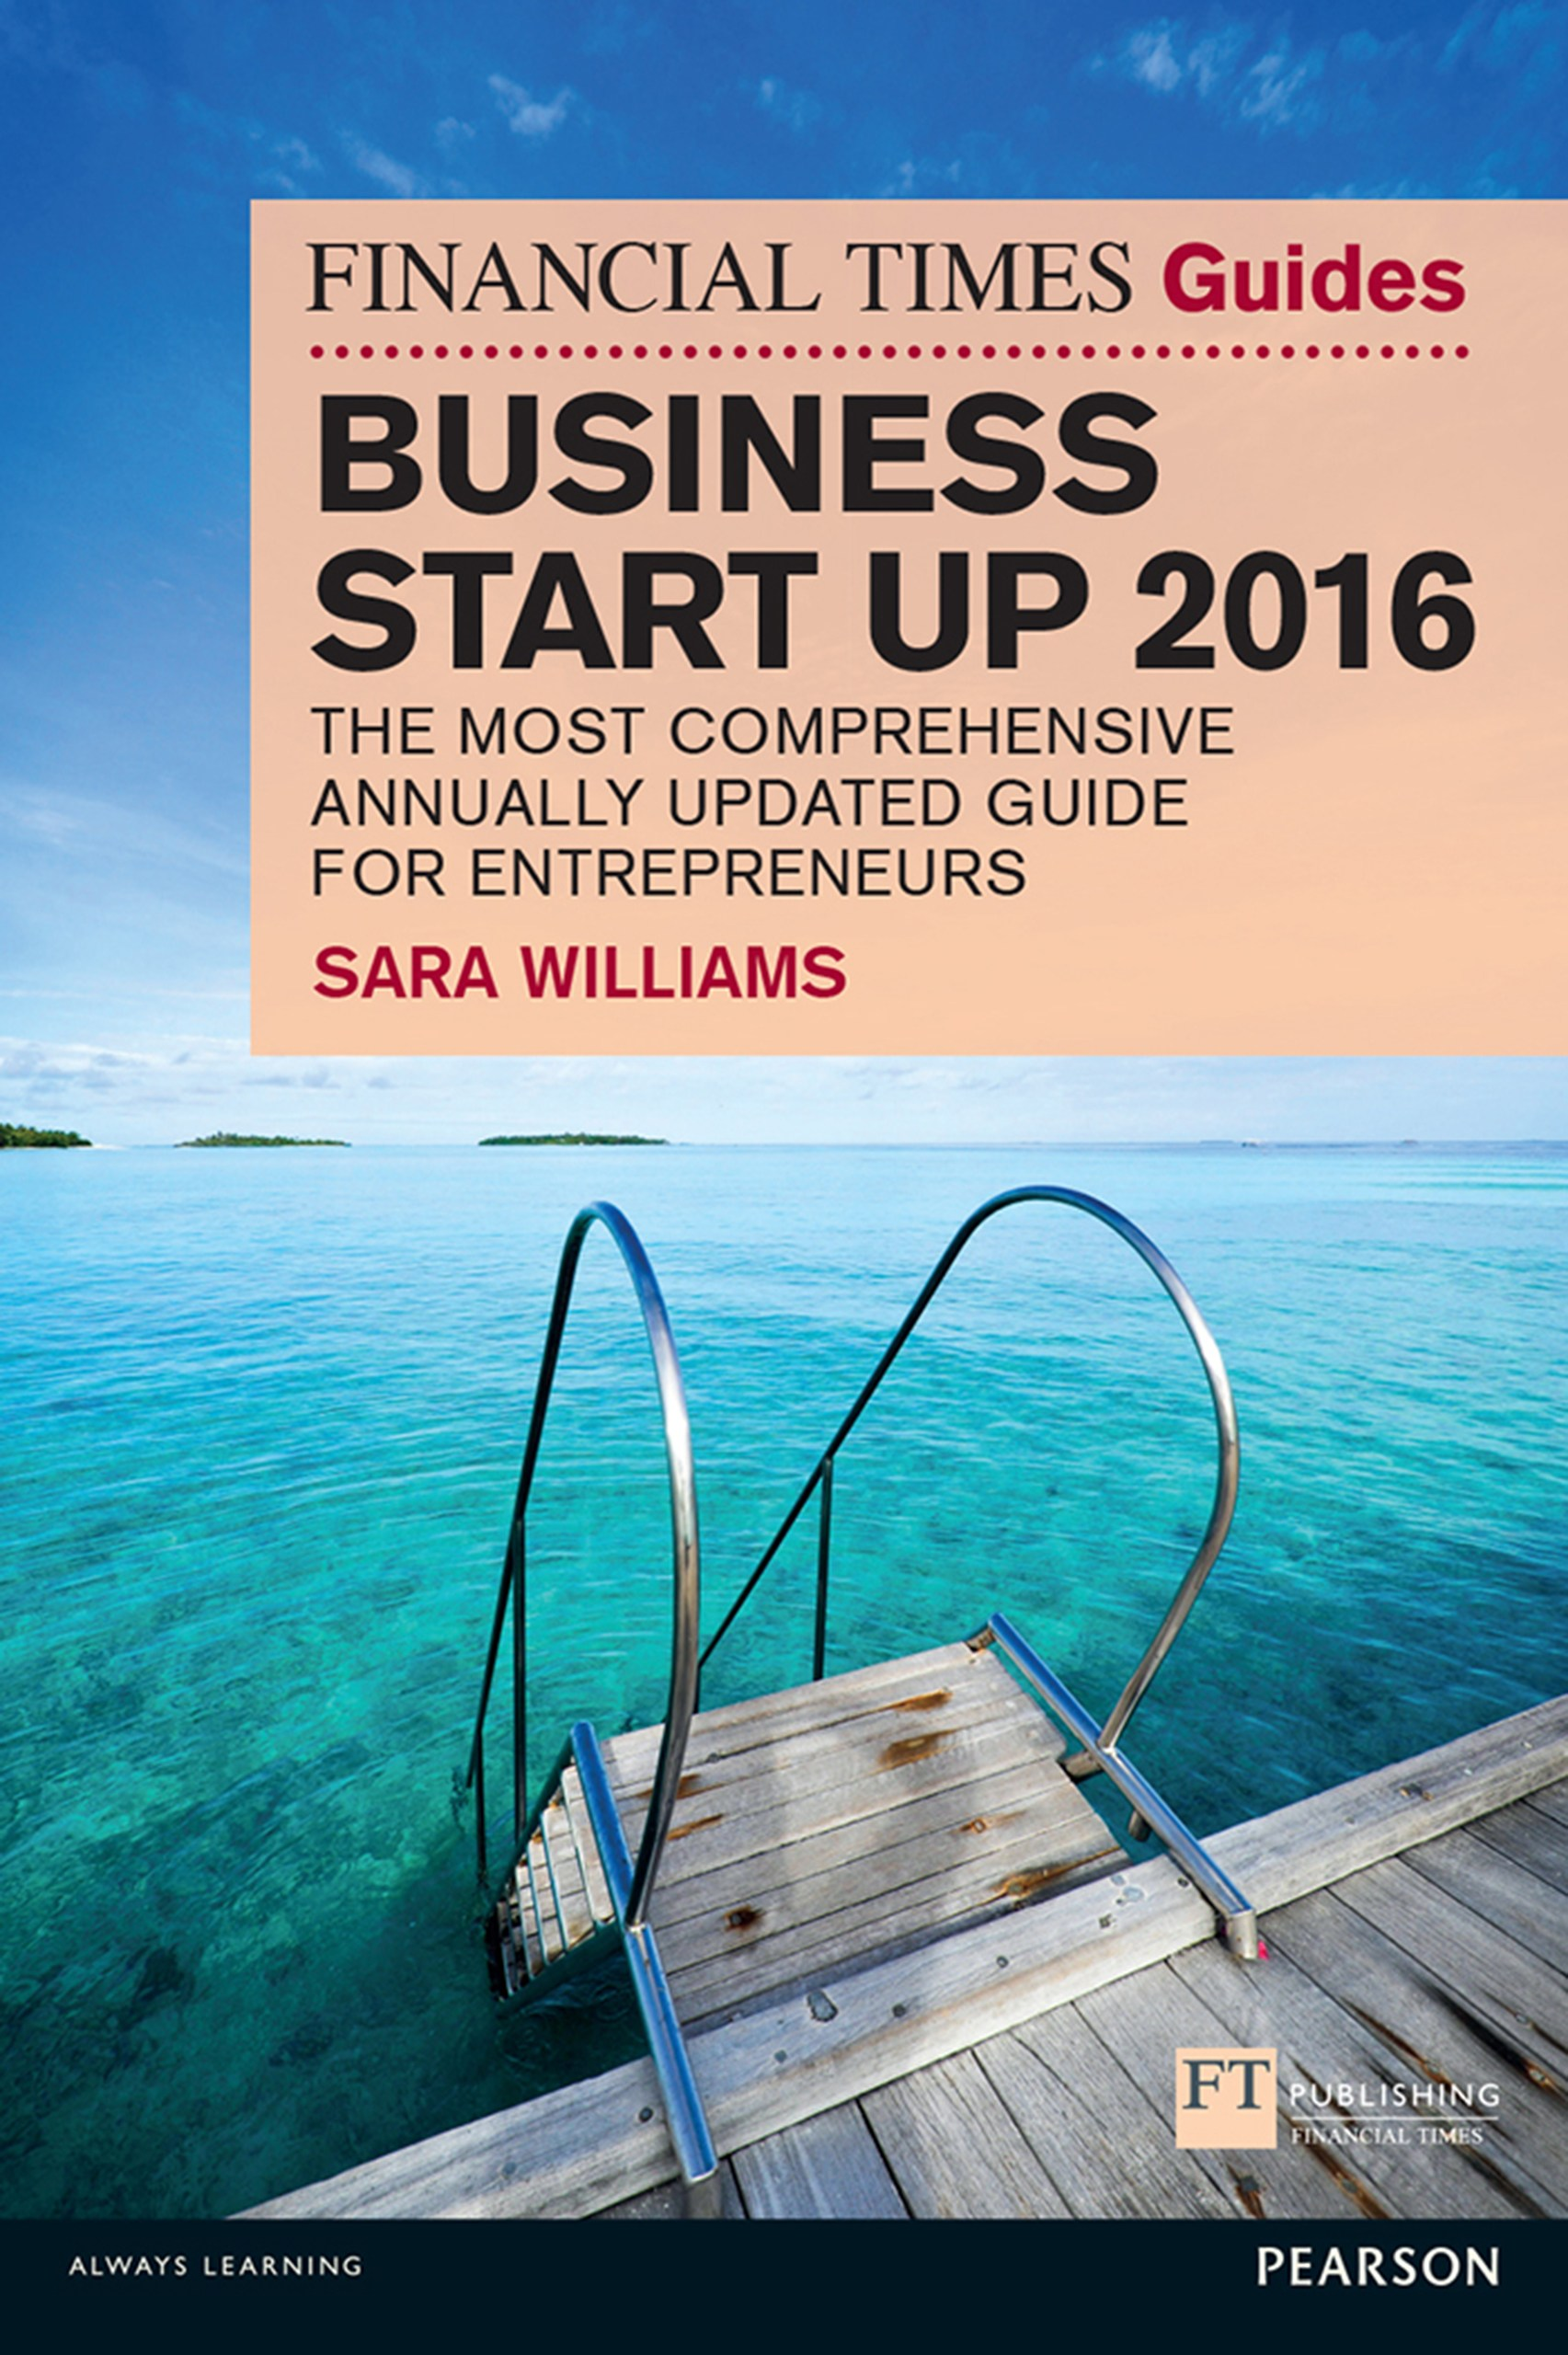 Financial Times Guide to Business Start Up 2016, The: The Most Comprehensive Annually Updated Guide for Entrepreneurs